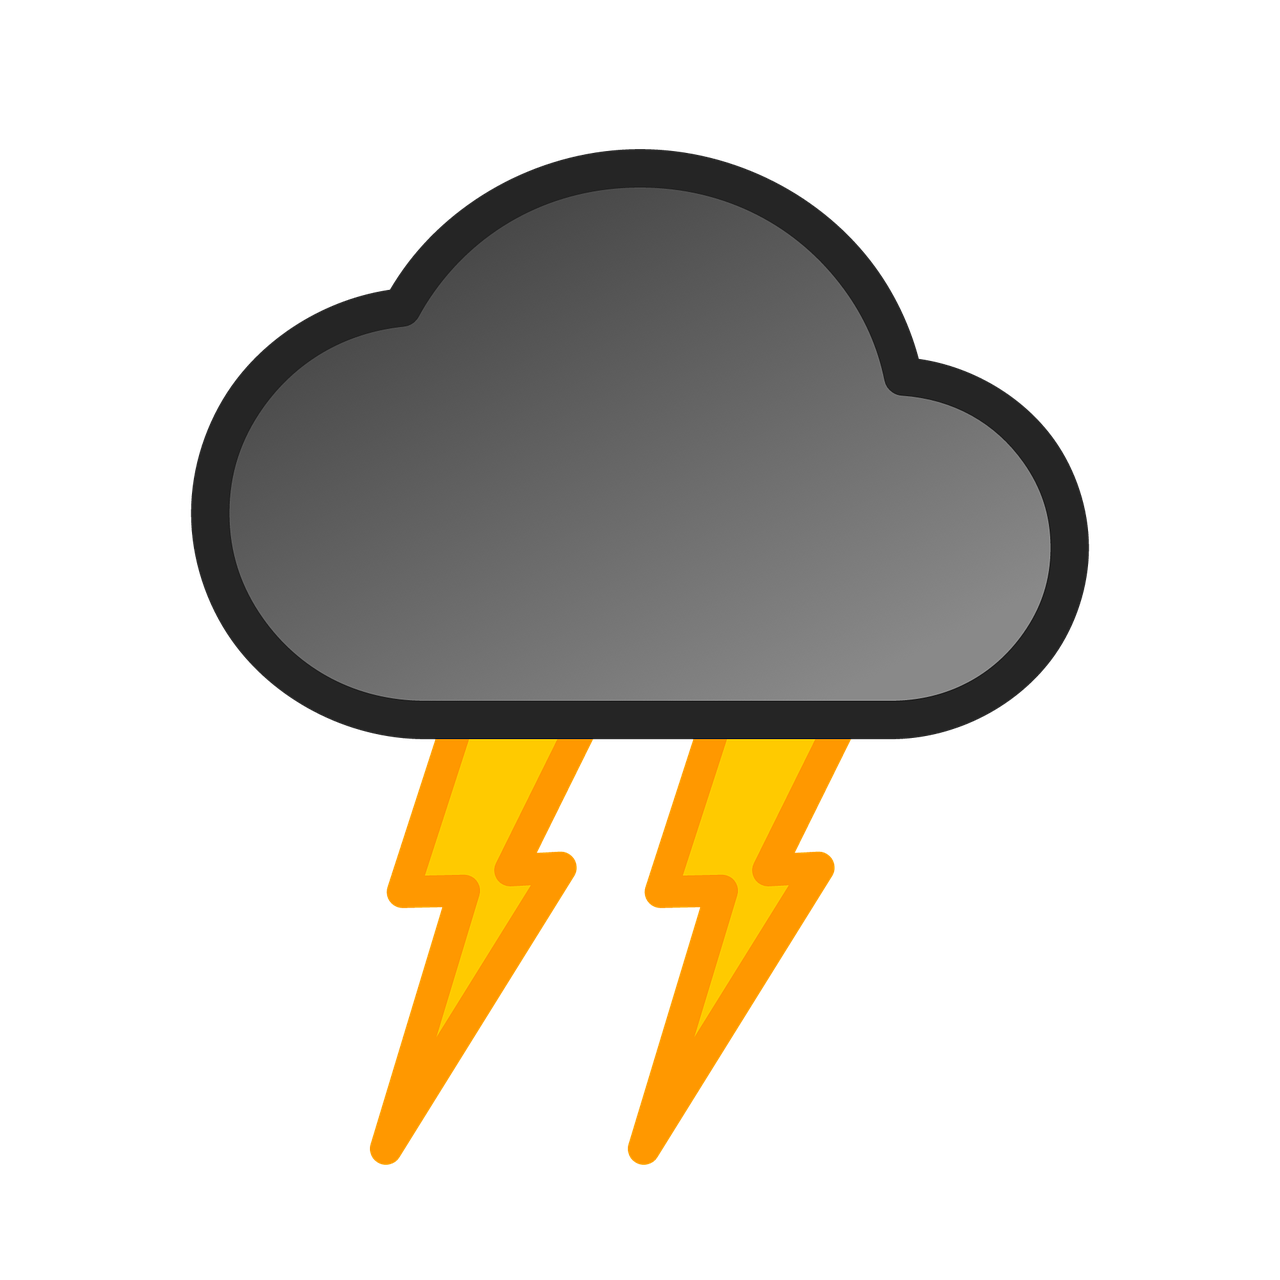 Lightning clipart stylized. Storm grey yellow free